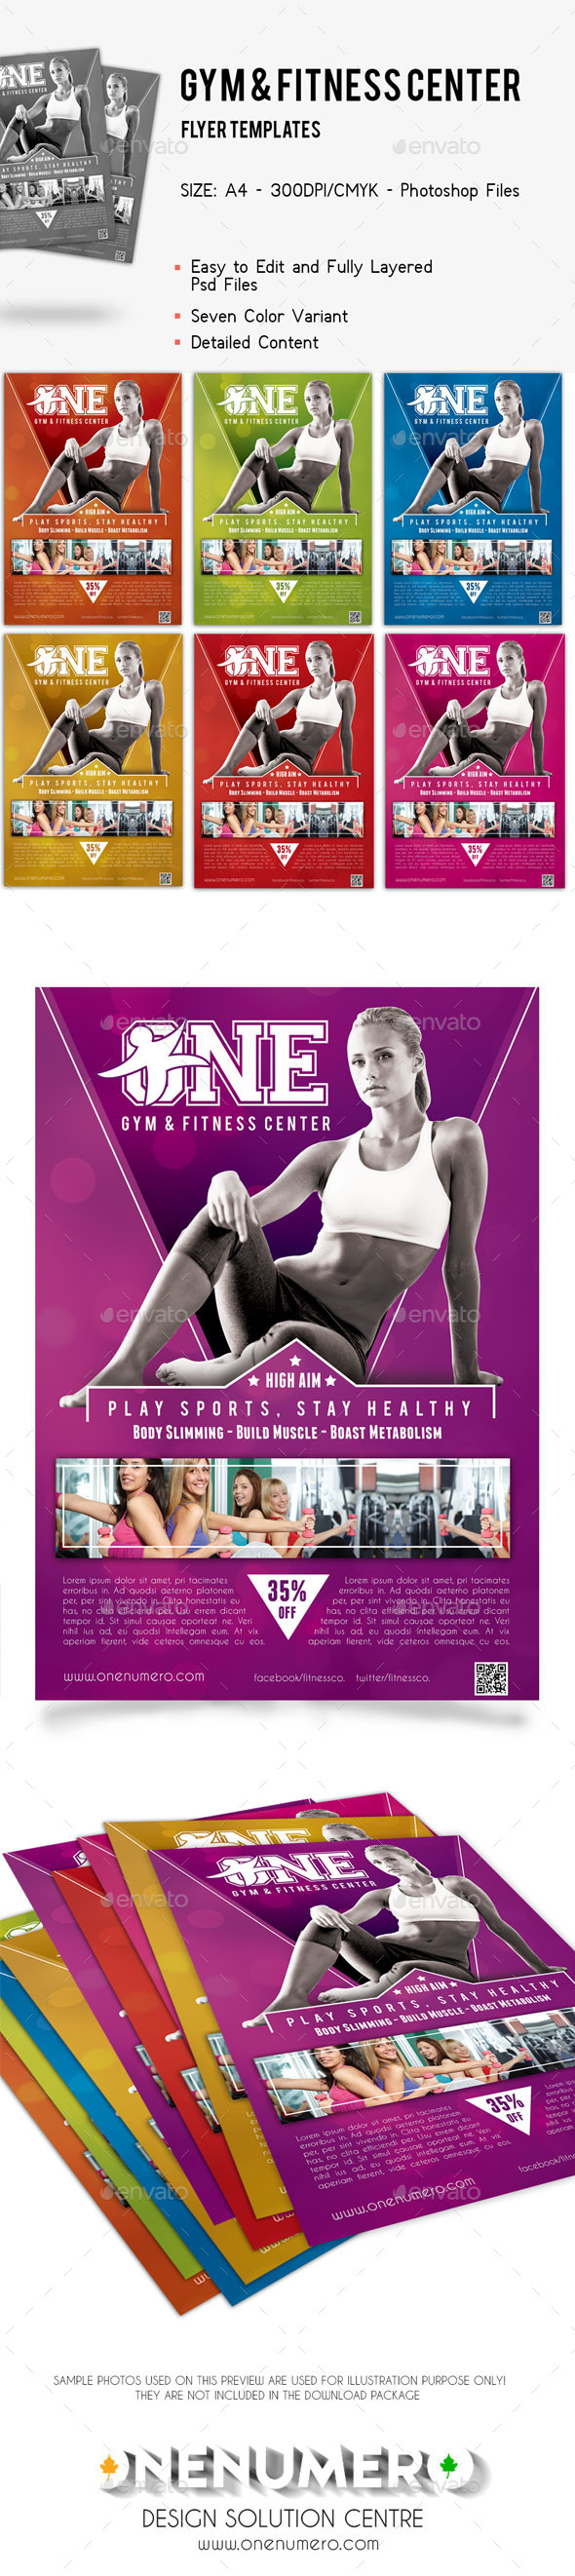 Gym Fitness Center Flyer Template